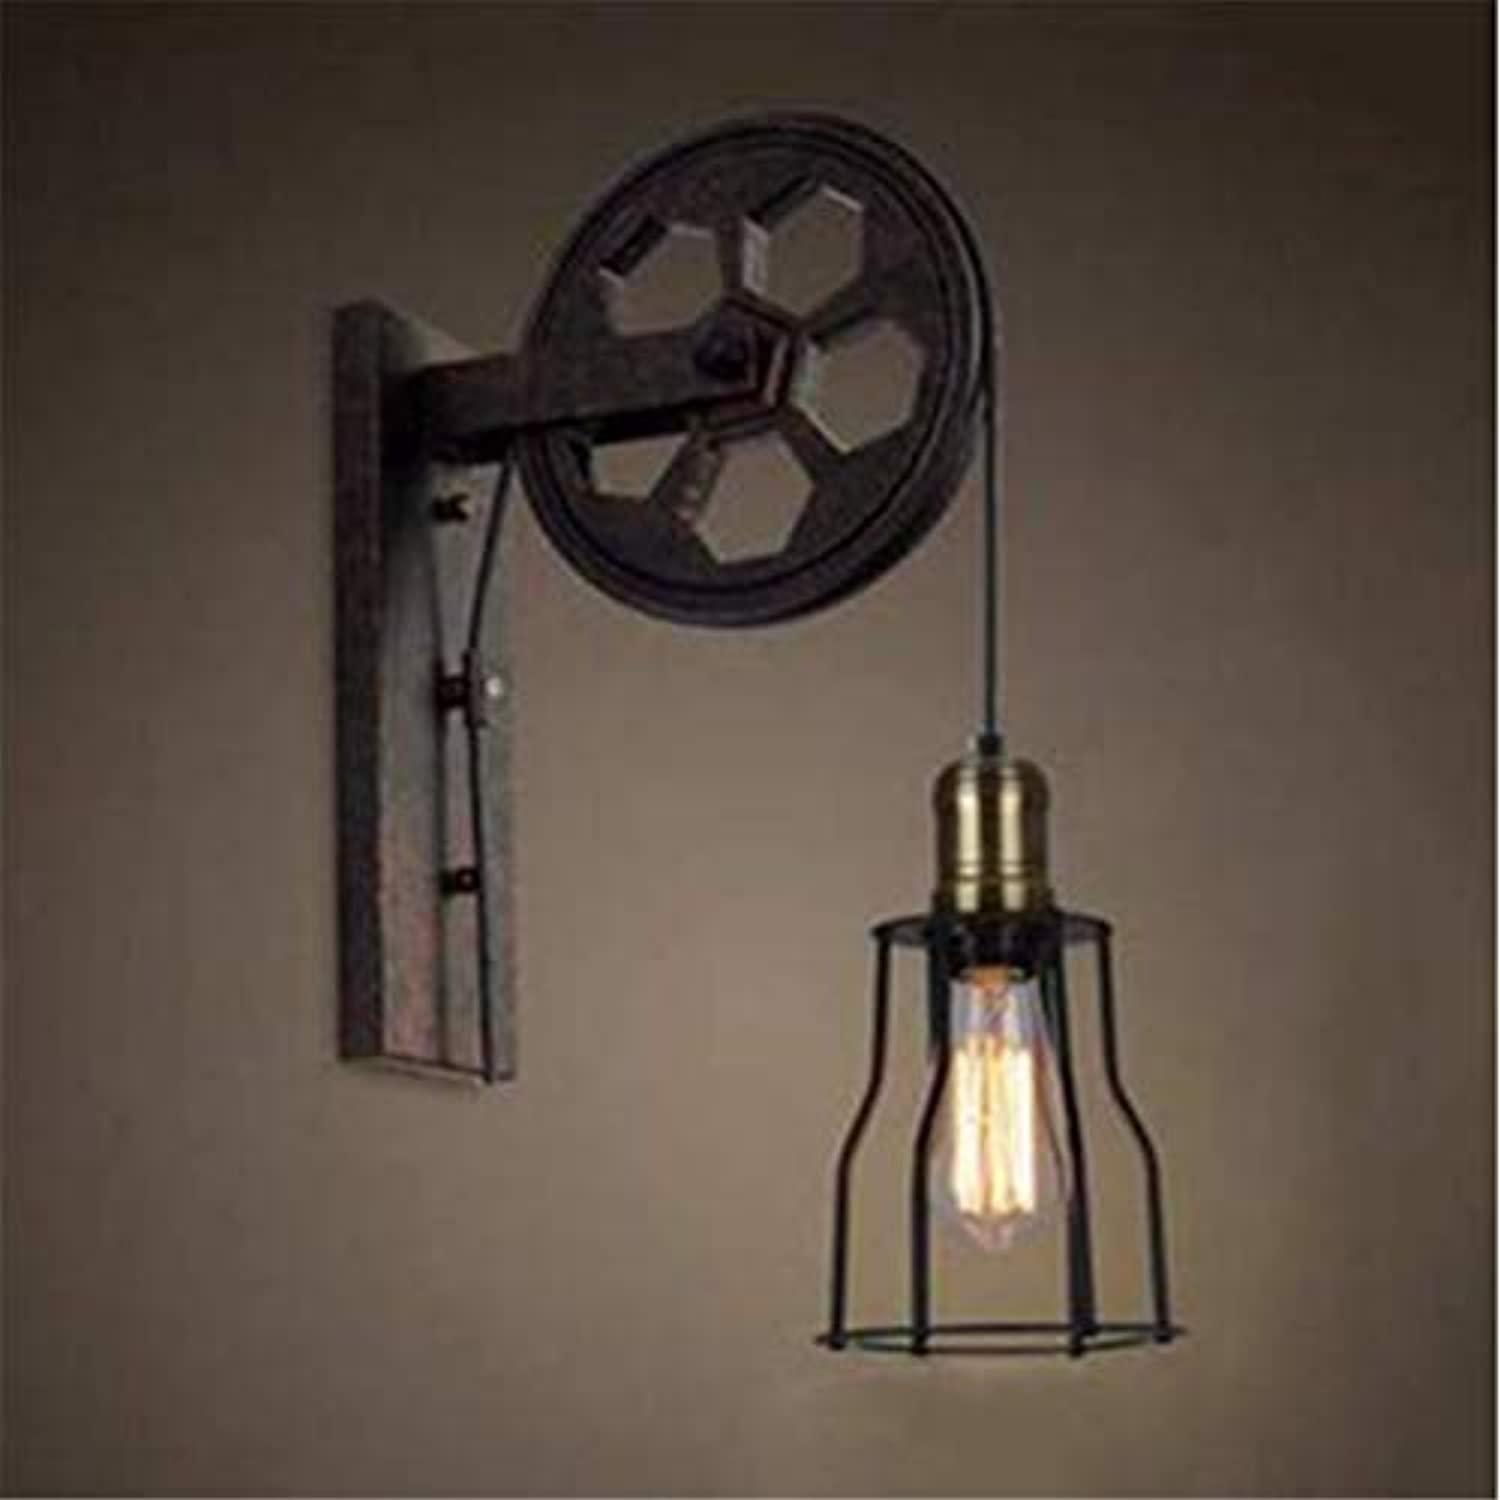 Lichtwall Sconce Light With Extendable Armretro Industrial Metal Lamp Decoration For Bar Restaurant Coffee Shop And Home Use, E27 Socket